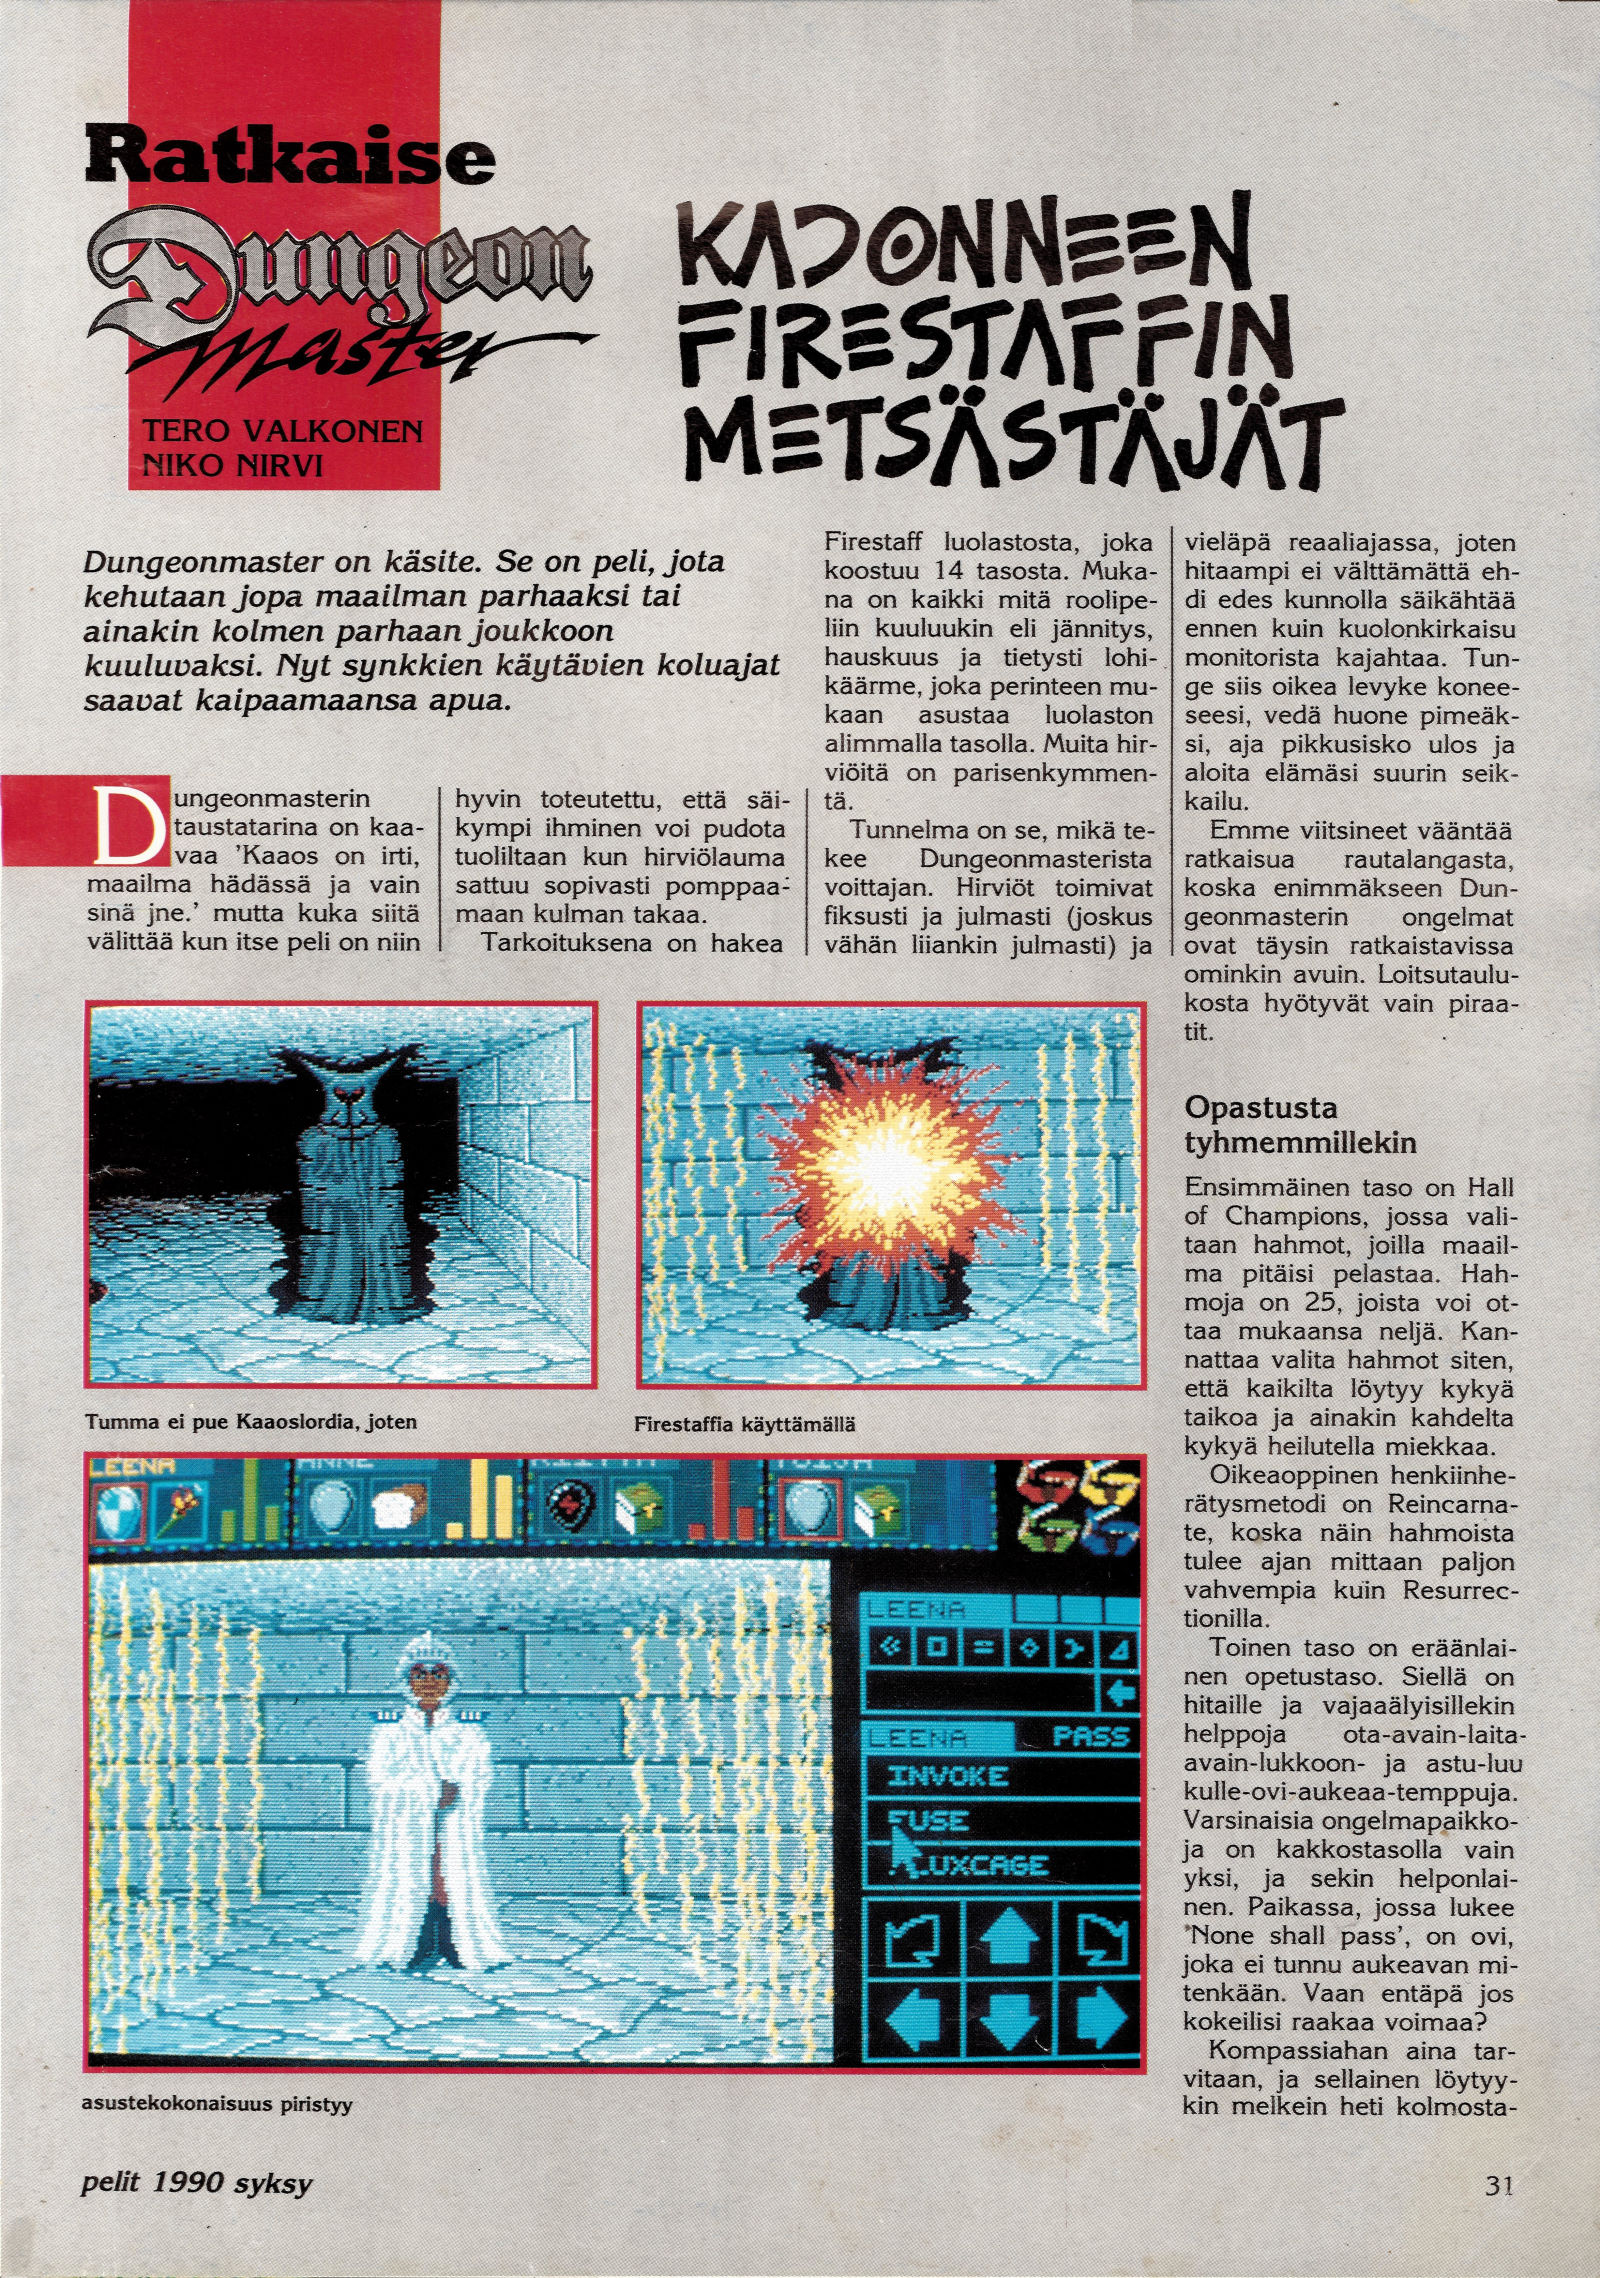 Dungeon Master Hints published in Finnish magazine 'Pelit', Issue #6 Autumn 1990, Page 31